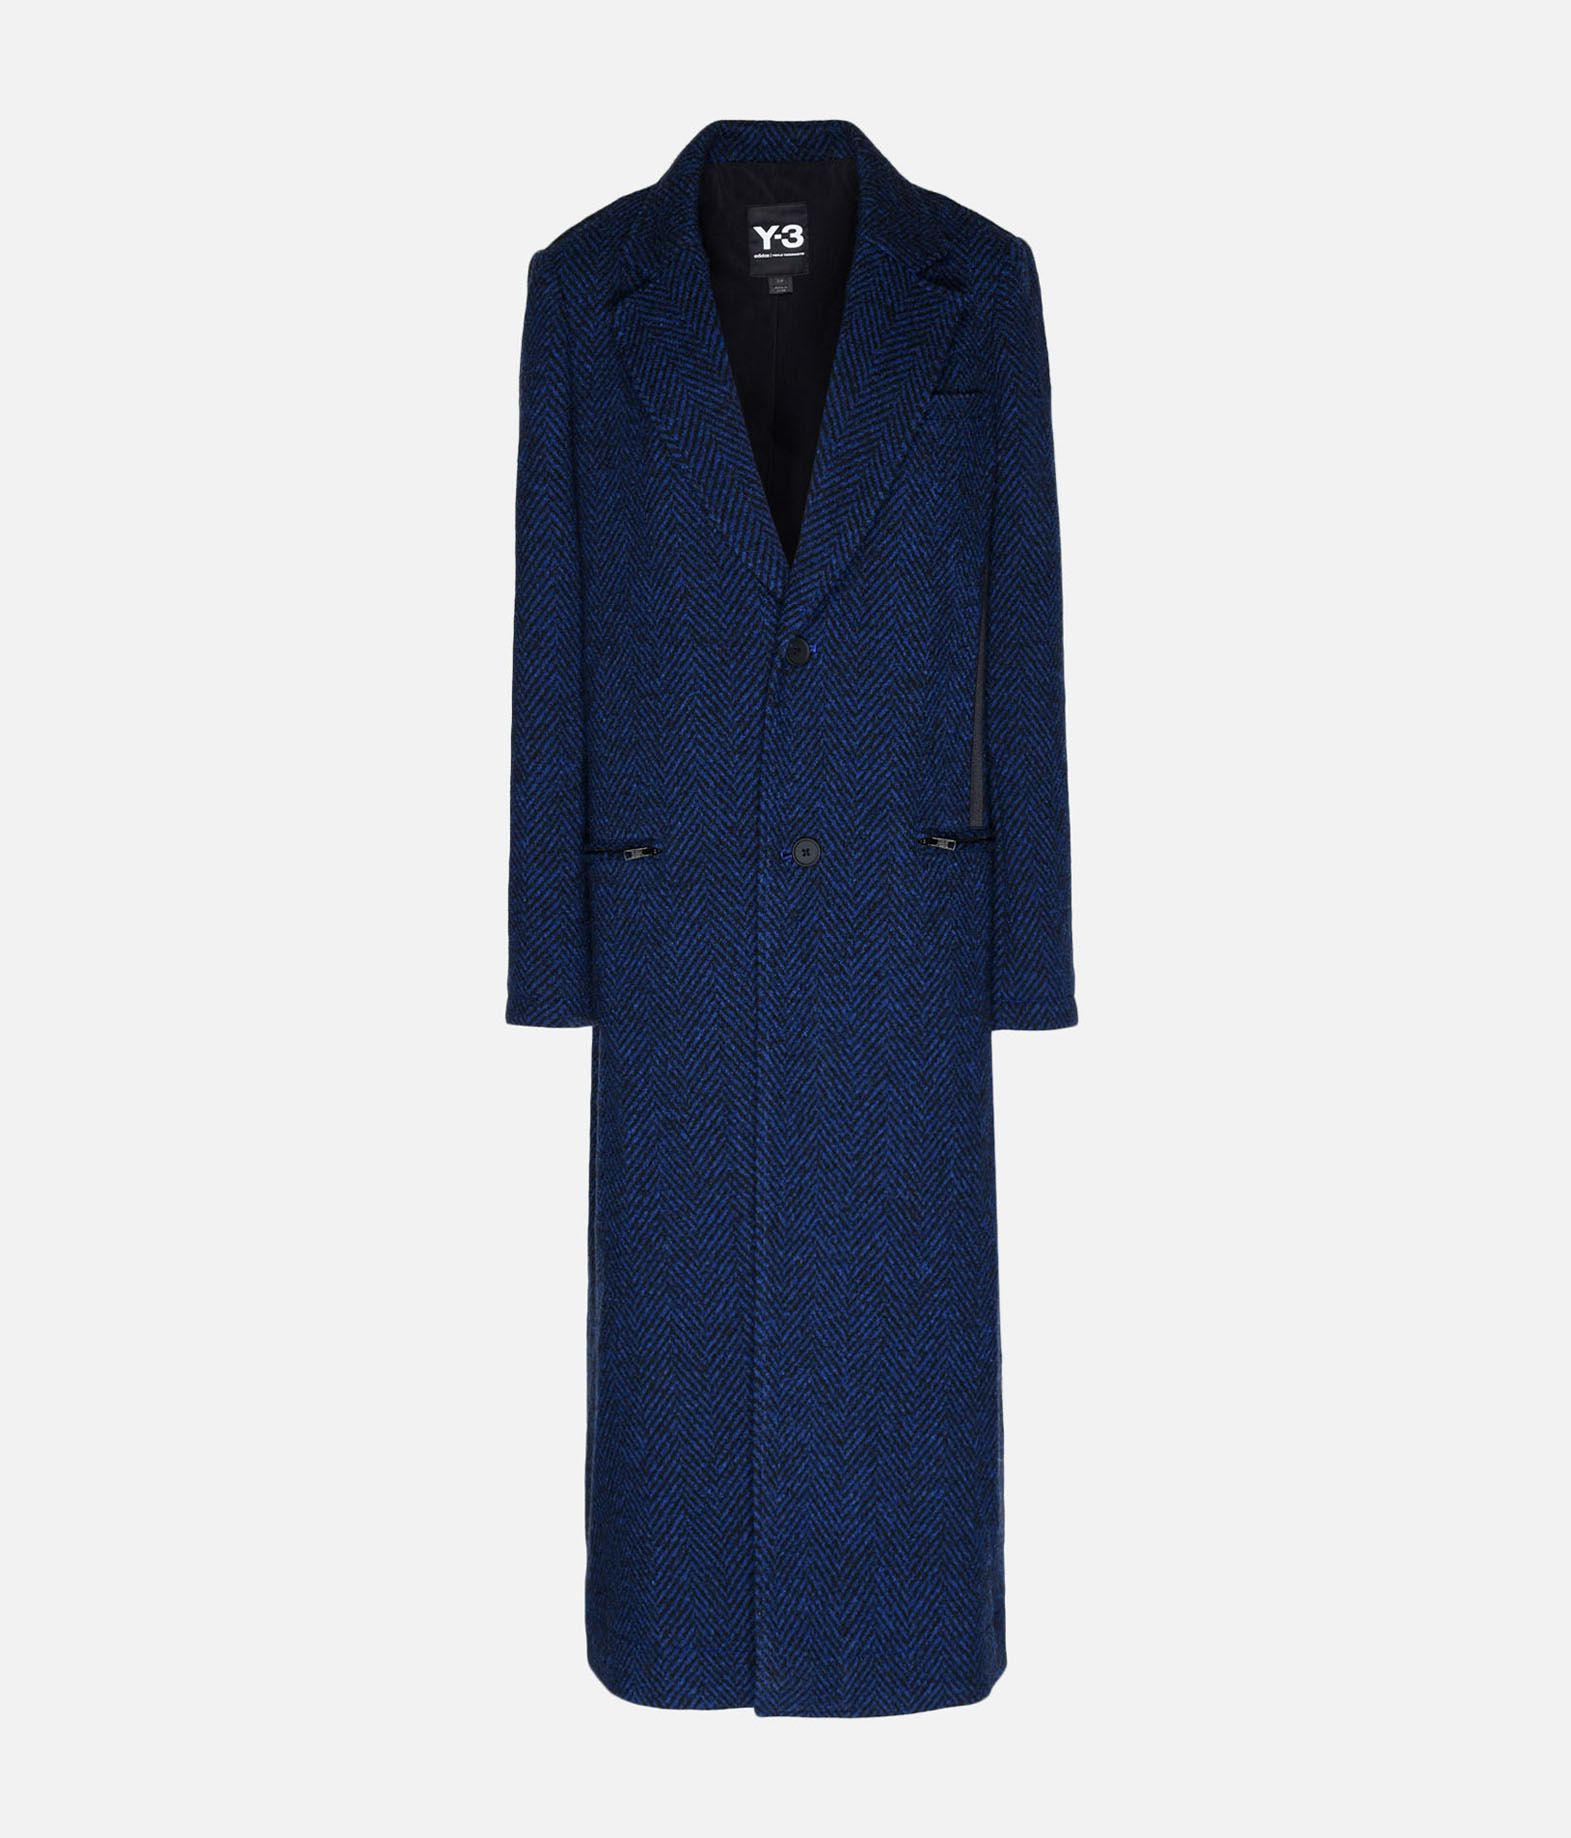 Y-3 Y-3 3-Stripes Tailored Wool Coat Coat Woman f